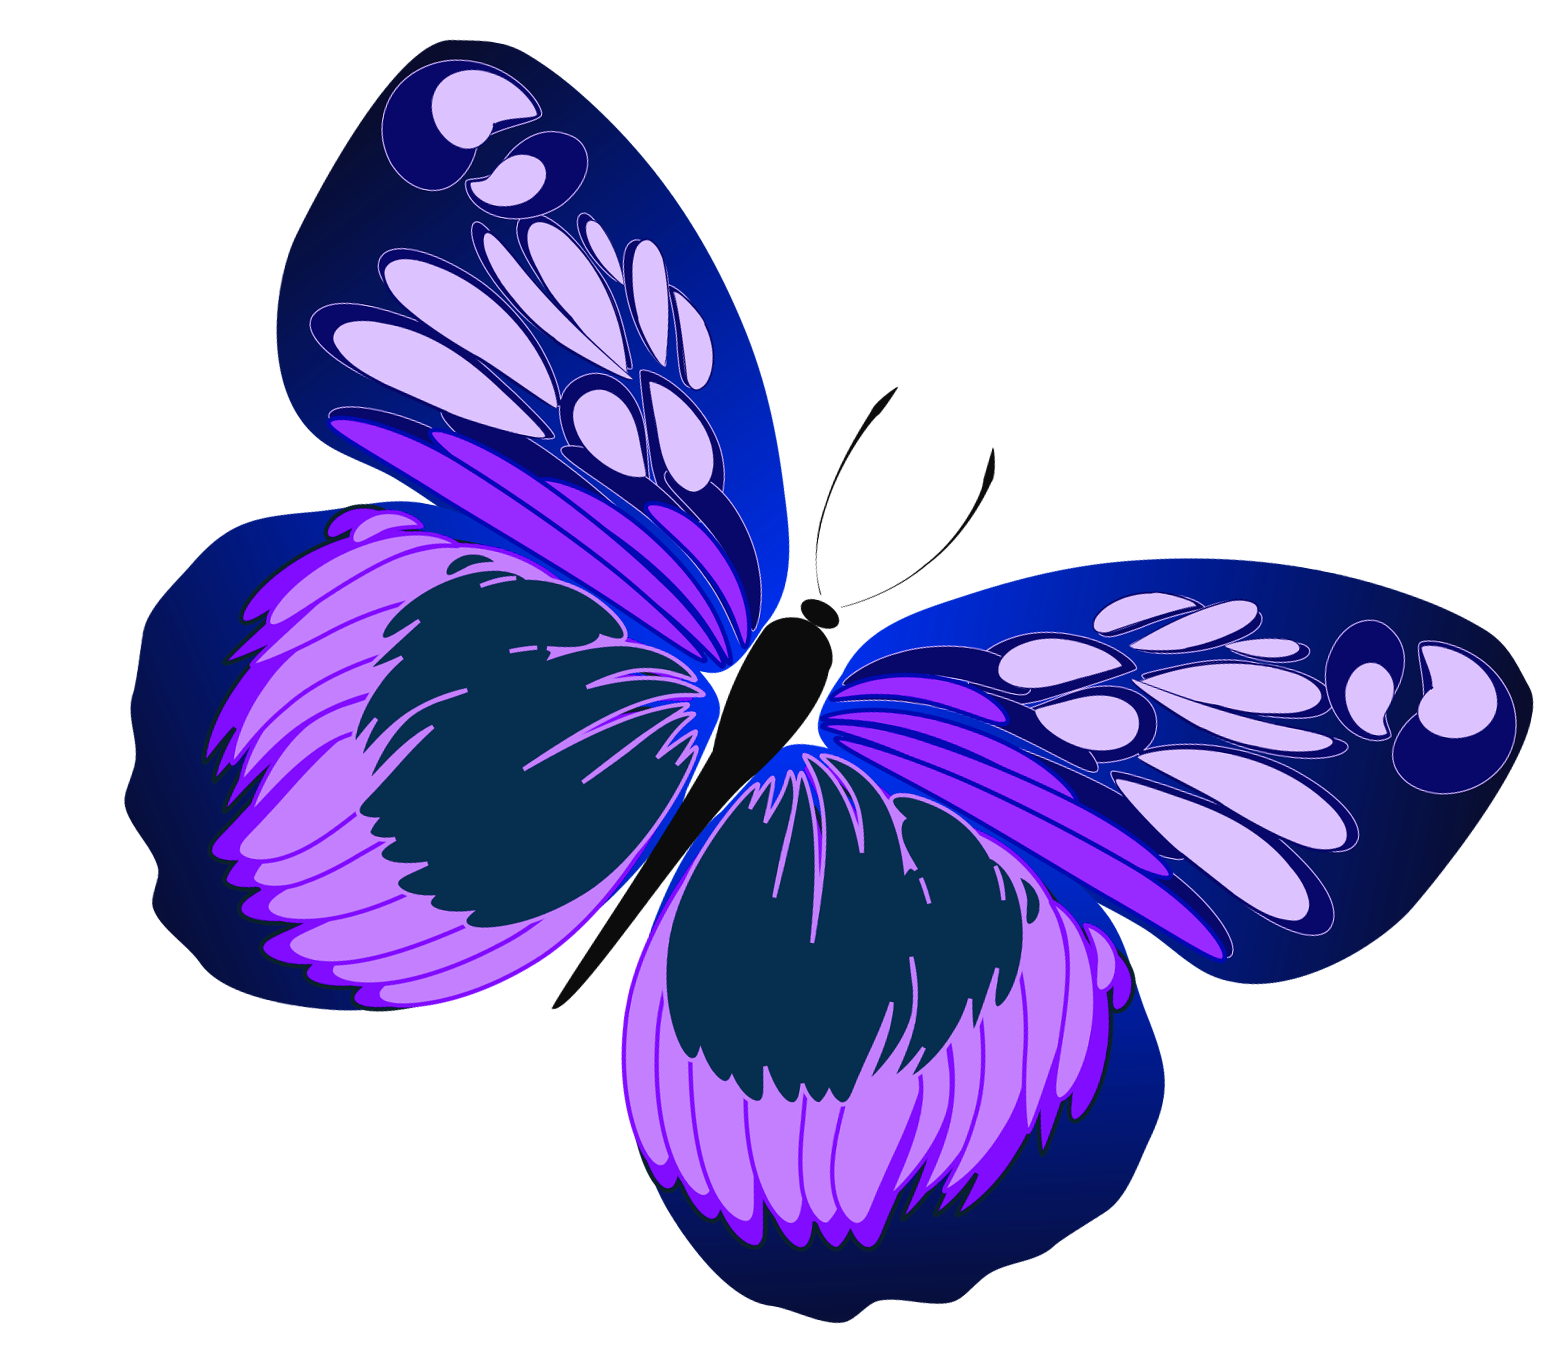 free clipart flowers and butterflies at getdrawings com free for rh getdrawings com free clipart butterflies black and white free clipart pictures of butterflies